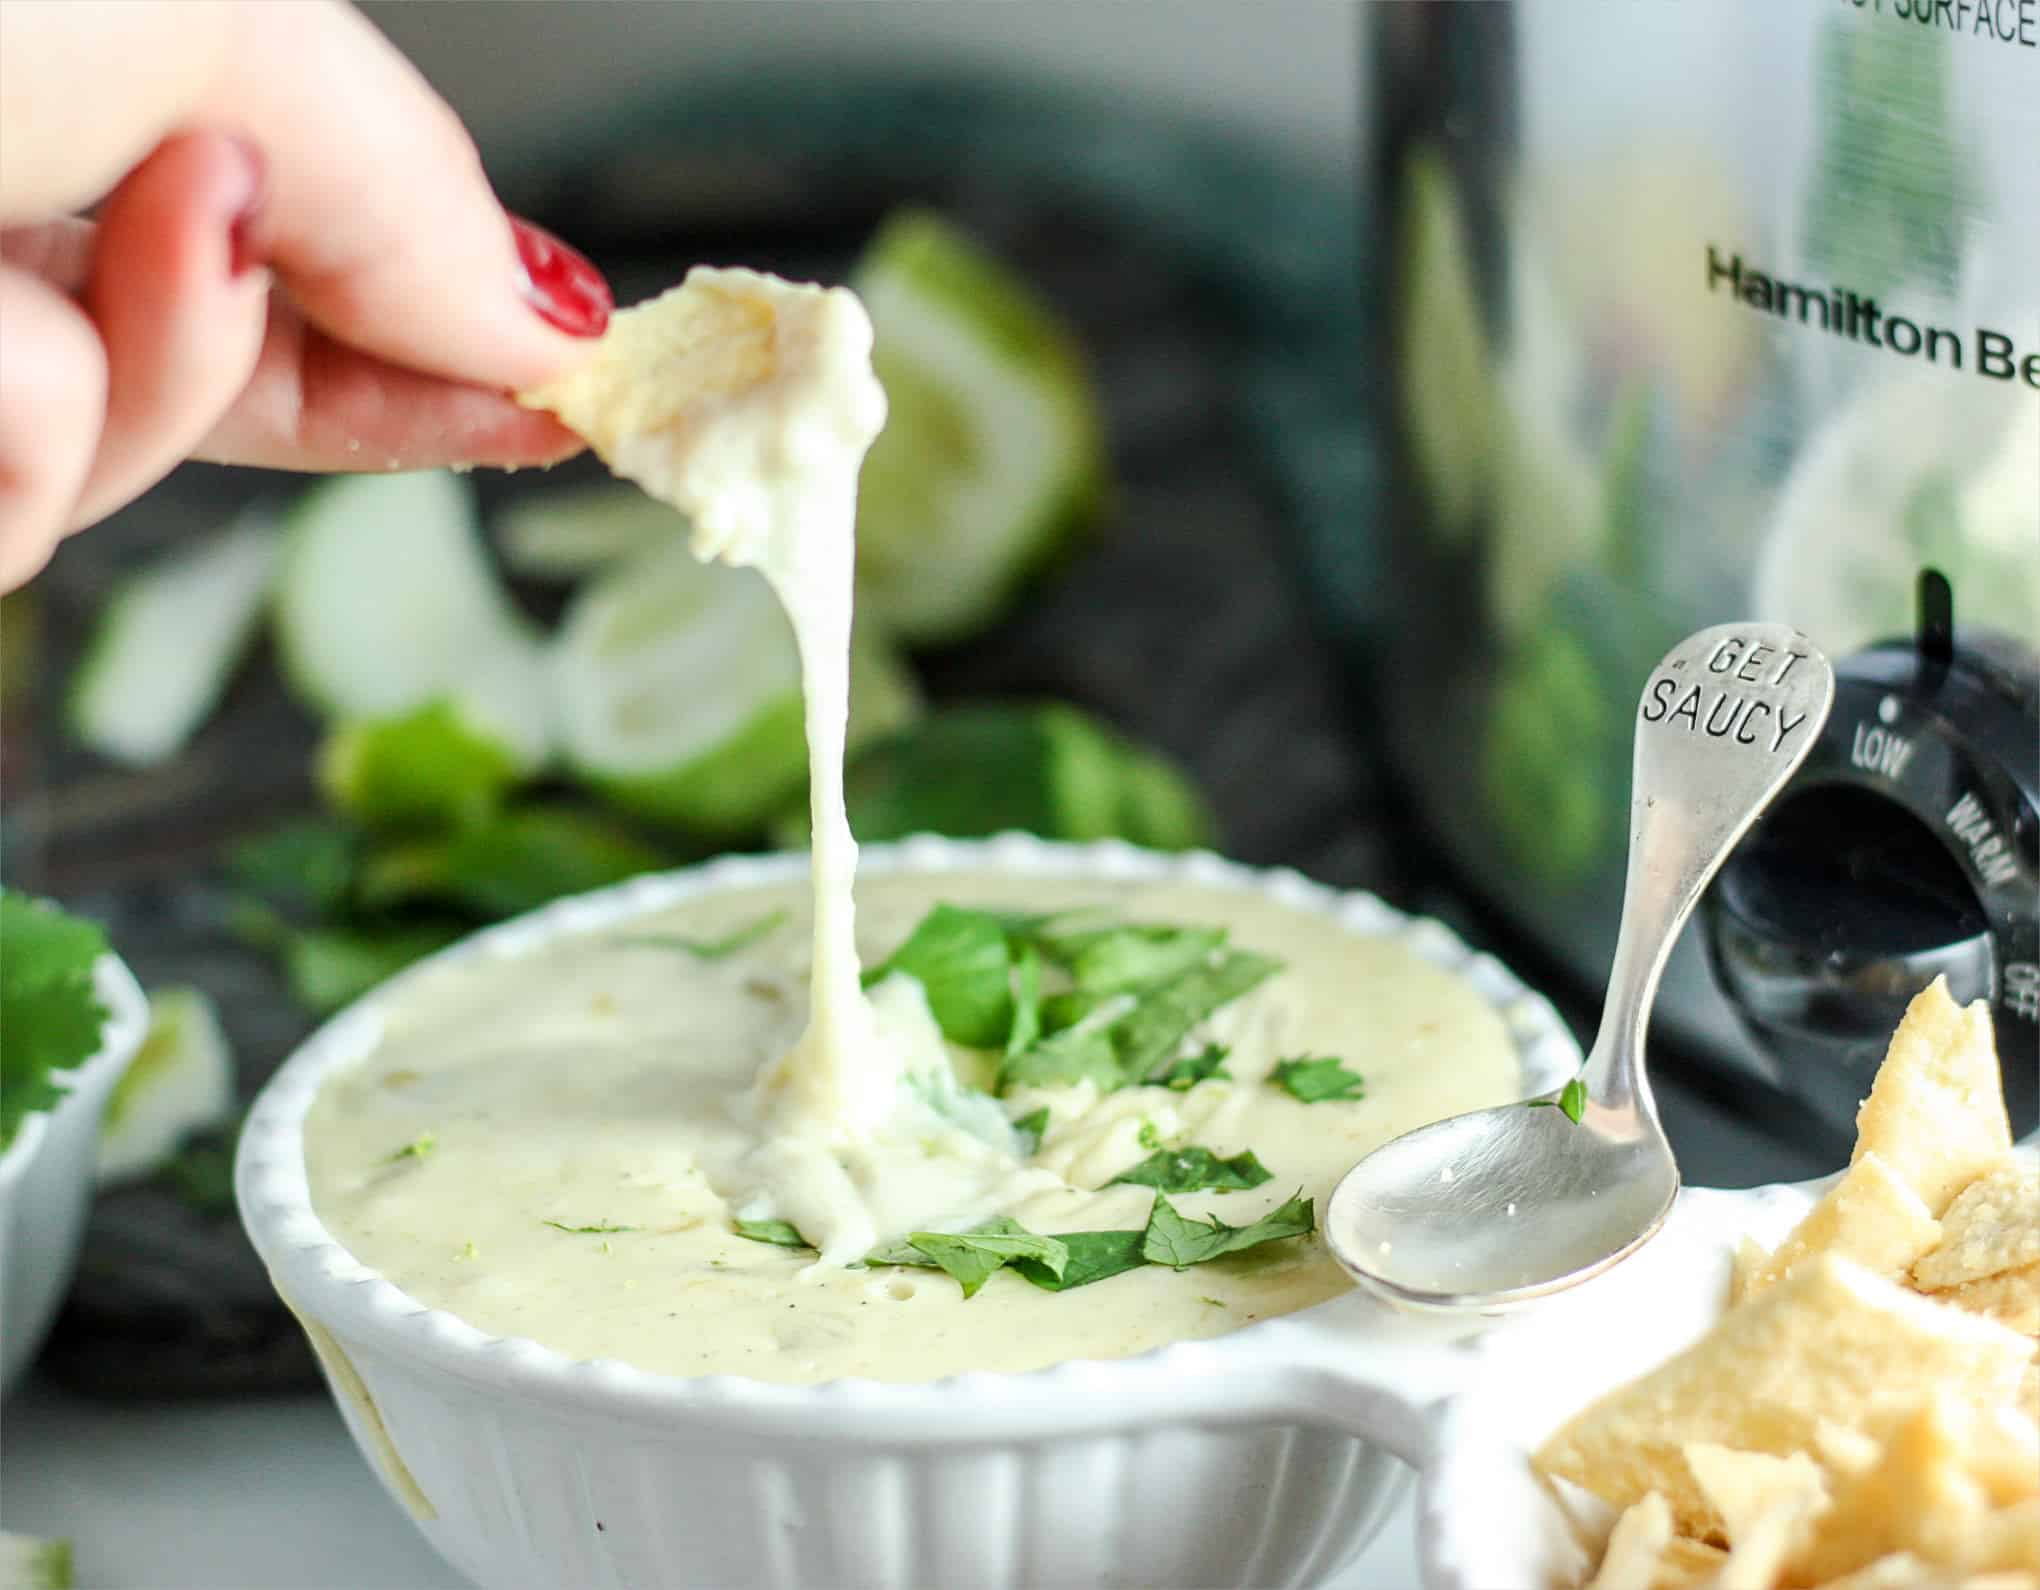 Throw this easy White Slow Cooker Queso together in 5 minutes flat! Yeah, you're totally going to be the life of the party.